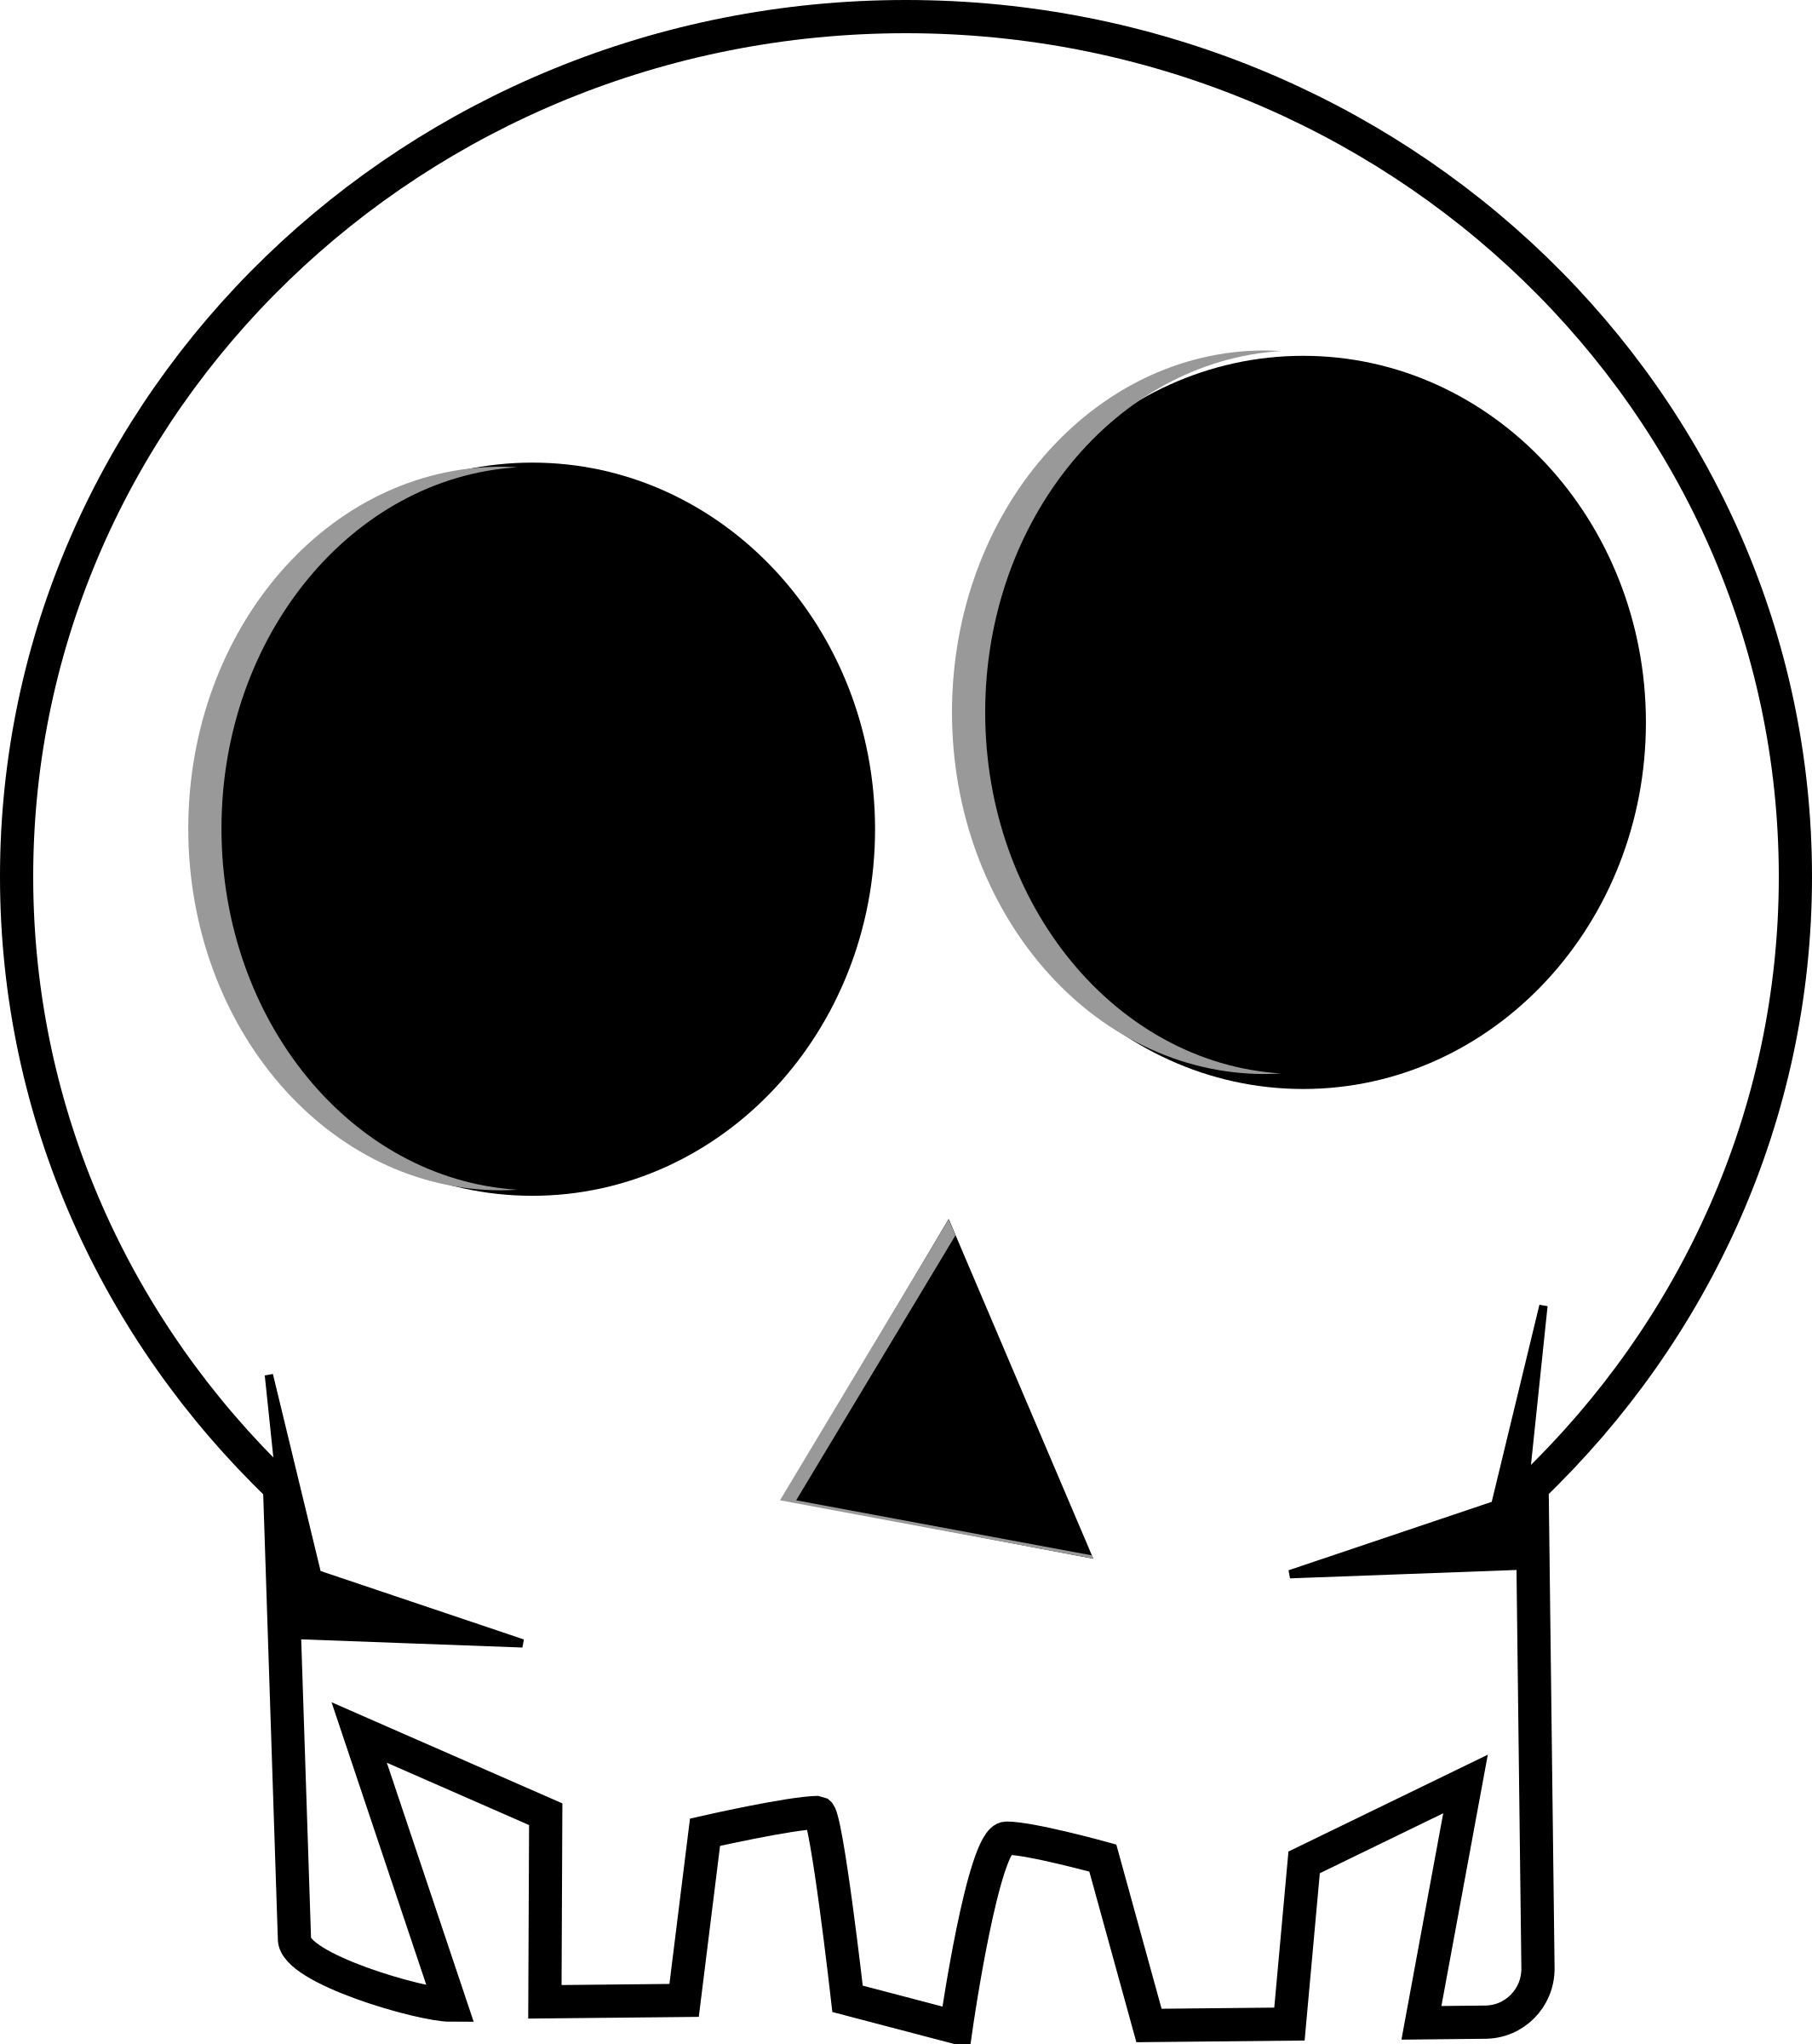 Skull big image png. Girly clipart black and white